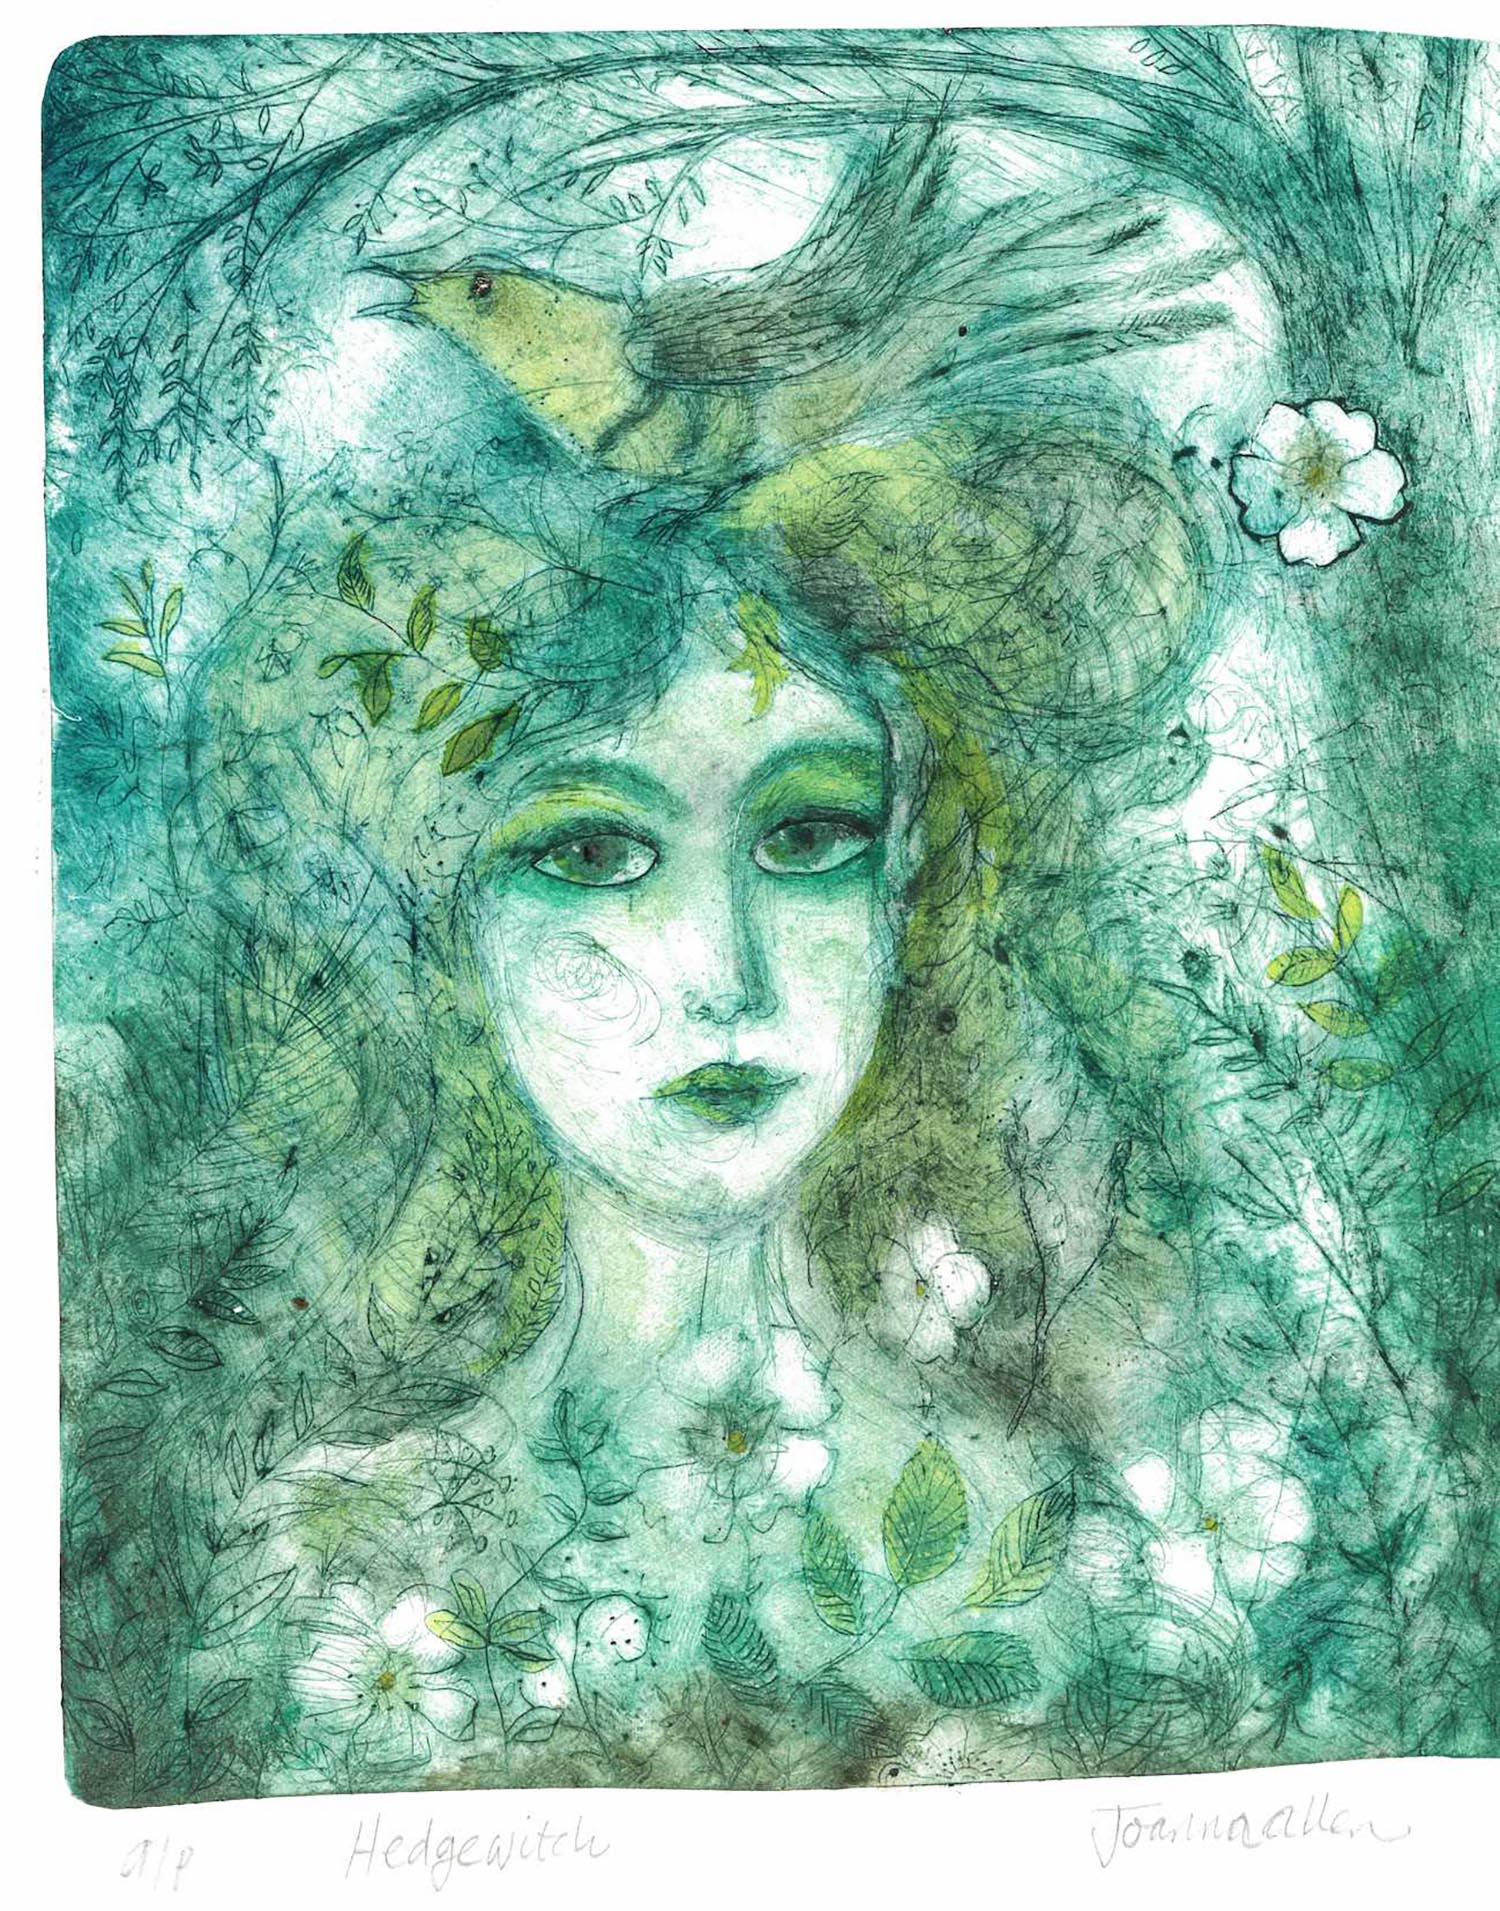 Hedgewitch Green - handcoloured drypoint image 21x24cm framed 37x43cm £170